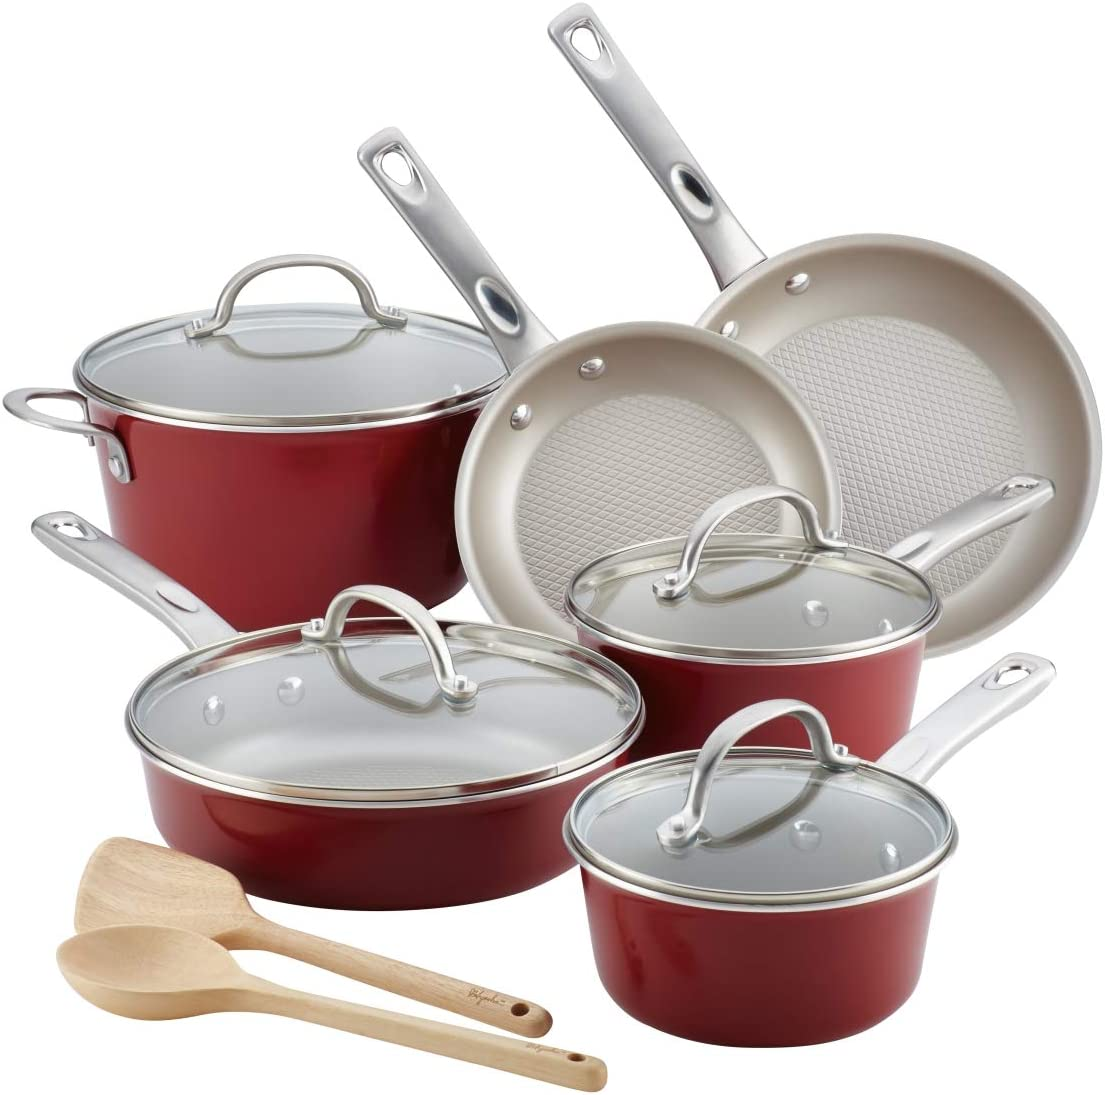 Ayesha Curry Home Collection Porcelain Enamel Nonstick Cookware Set (Sienna Red, 12-Piece)